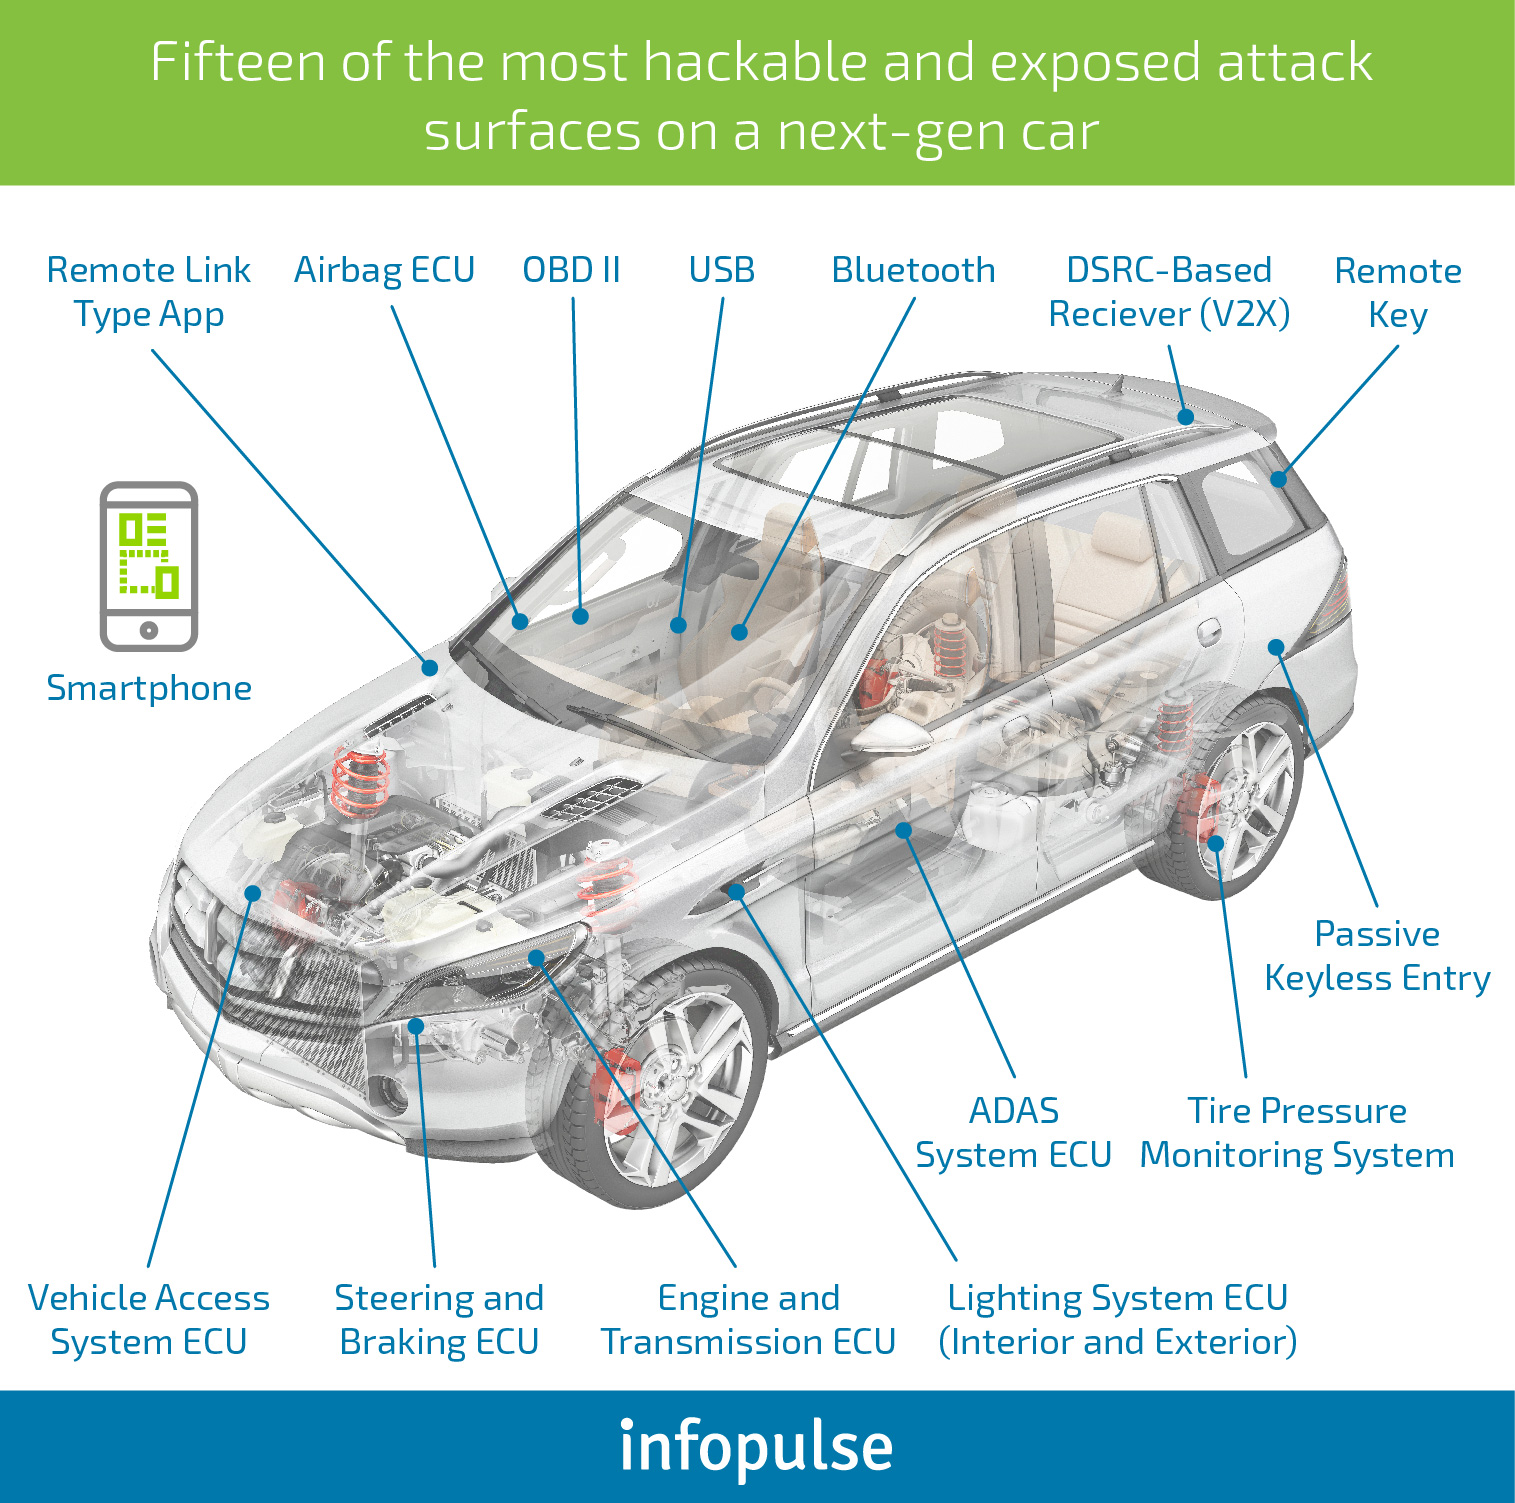 How to Ensure Automotive Cybersecurity in the Next-Gen Vehicles [Part 1] - Infopulse - 016380